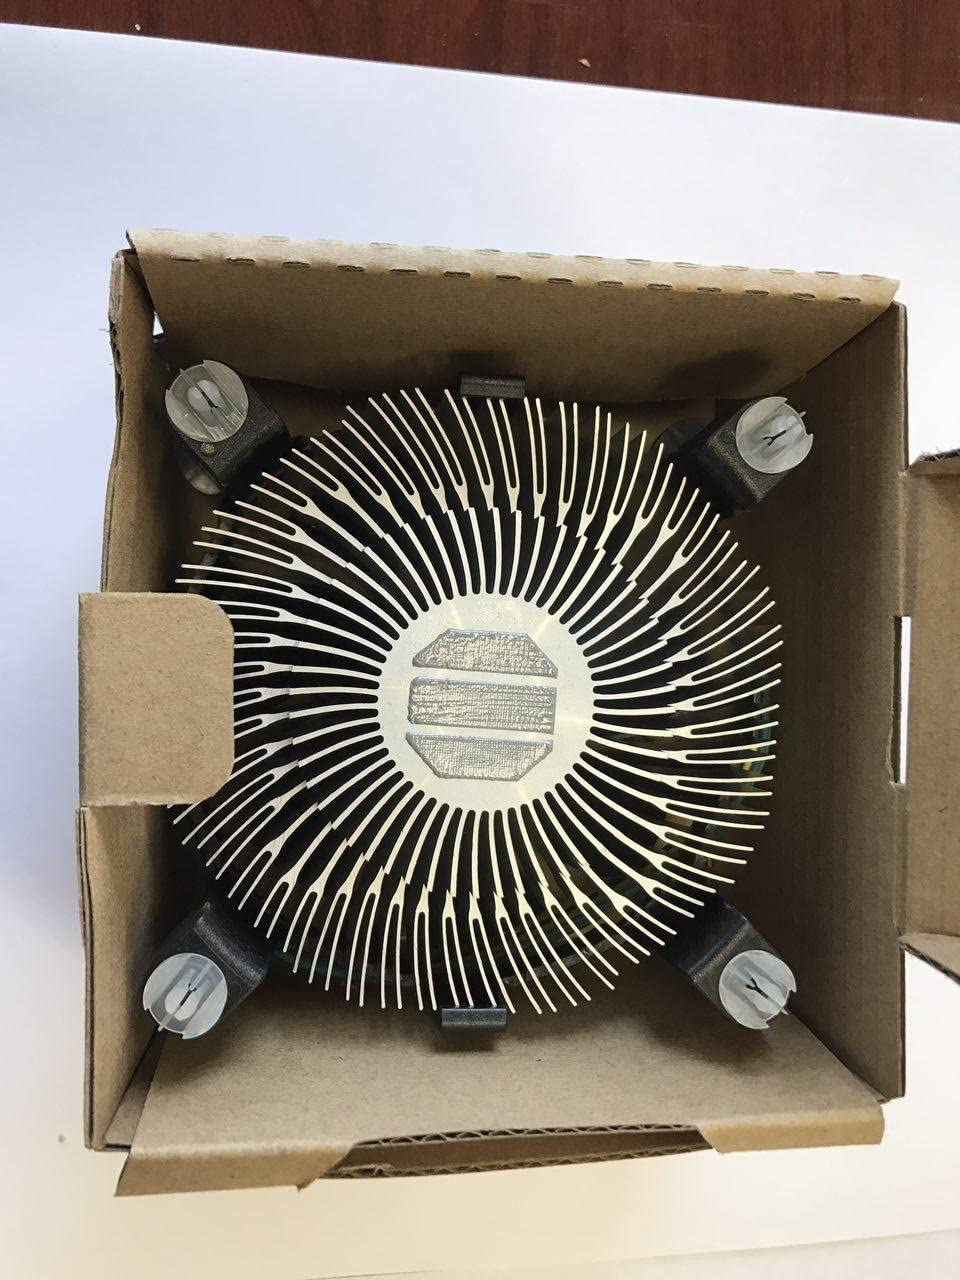 Intel E97379-003 Core i3//i5//i7 Socket 1150//1155//1156 4-Pin Connector CPU Cooler with Aluminum Heatsink and 3.5-Inch Fan for Desktop PC Computer